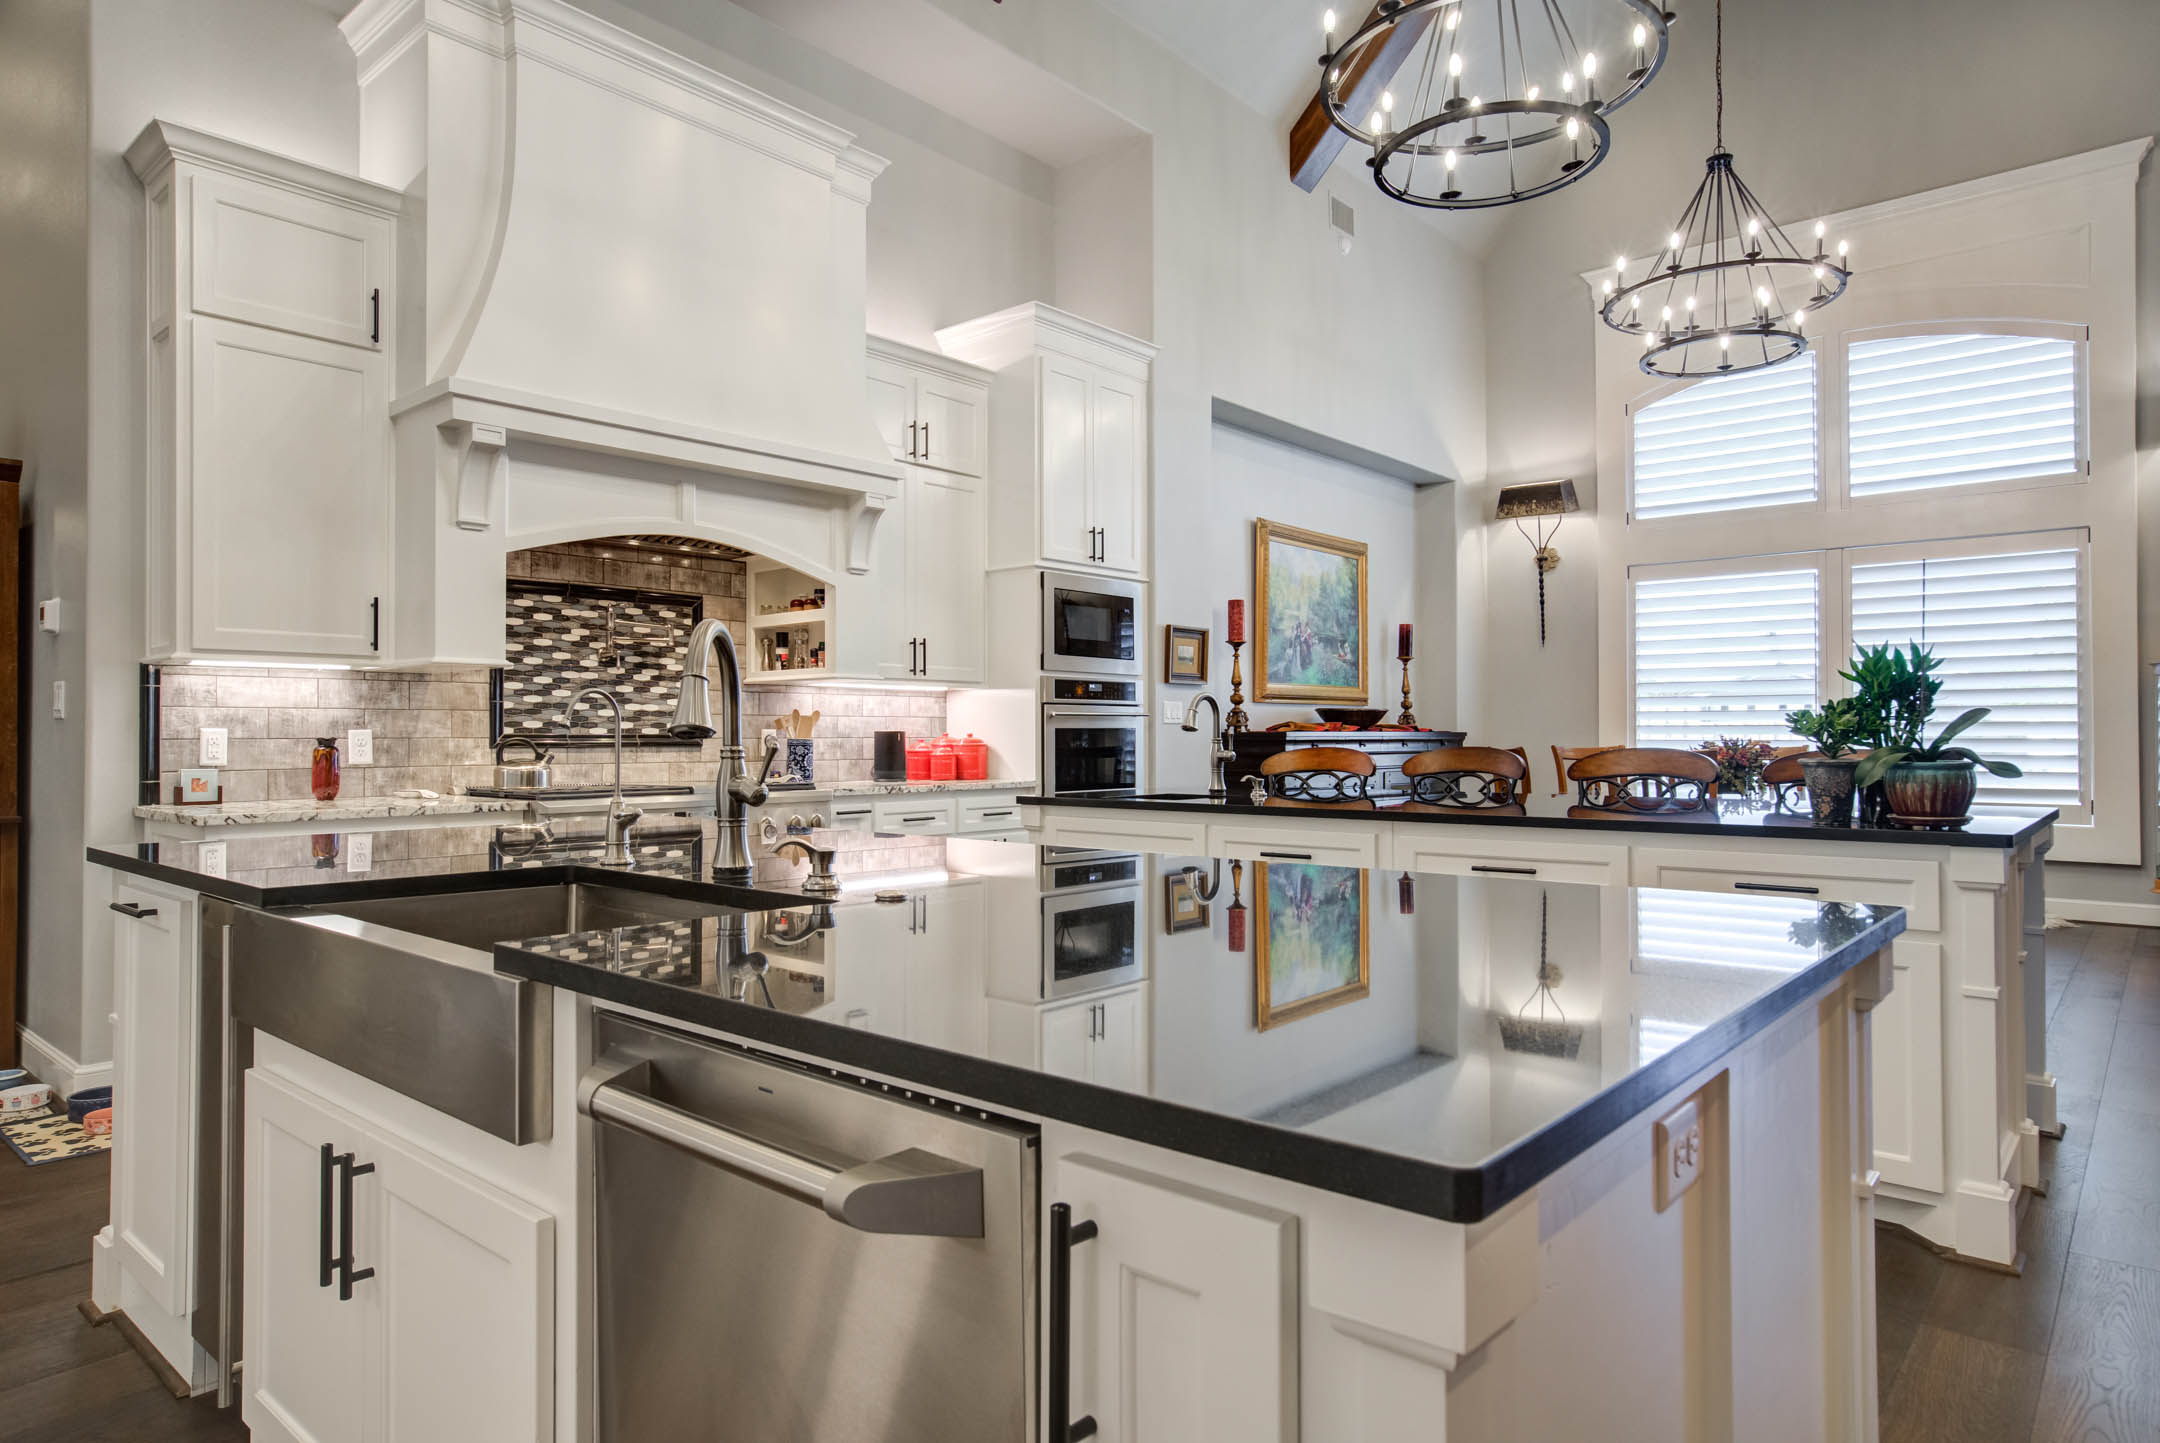 Kitchen island with appliances in custom home.